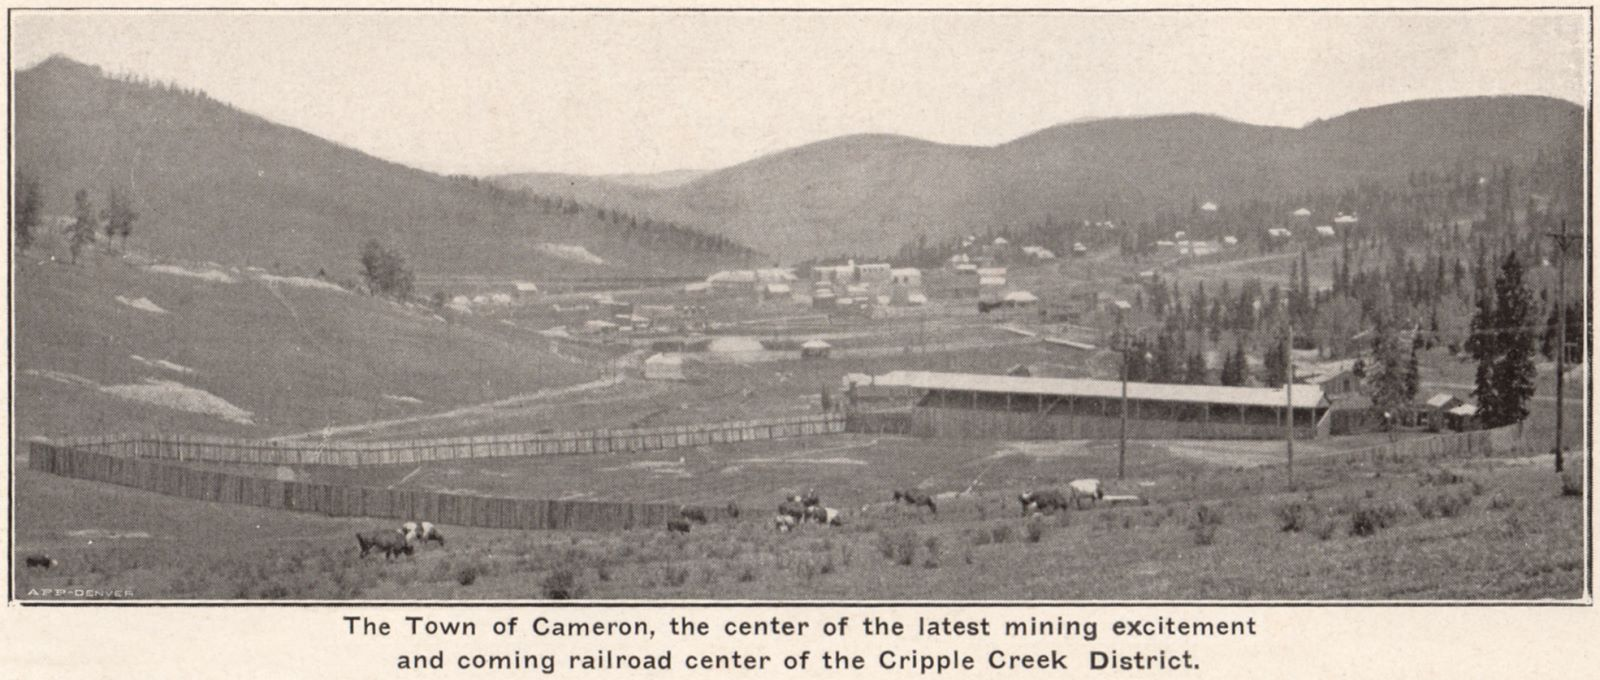 The Town of Cameron, the Center of the Latest Mining Excitement and Coming Railroad Center of the Cripple Creek District.